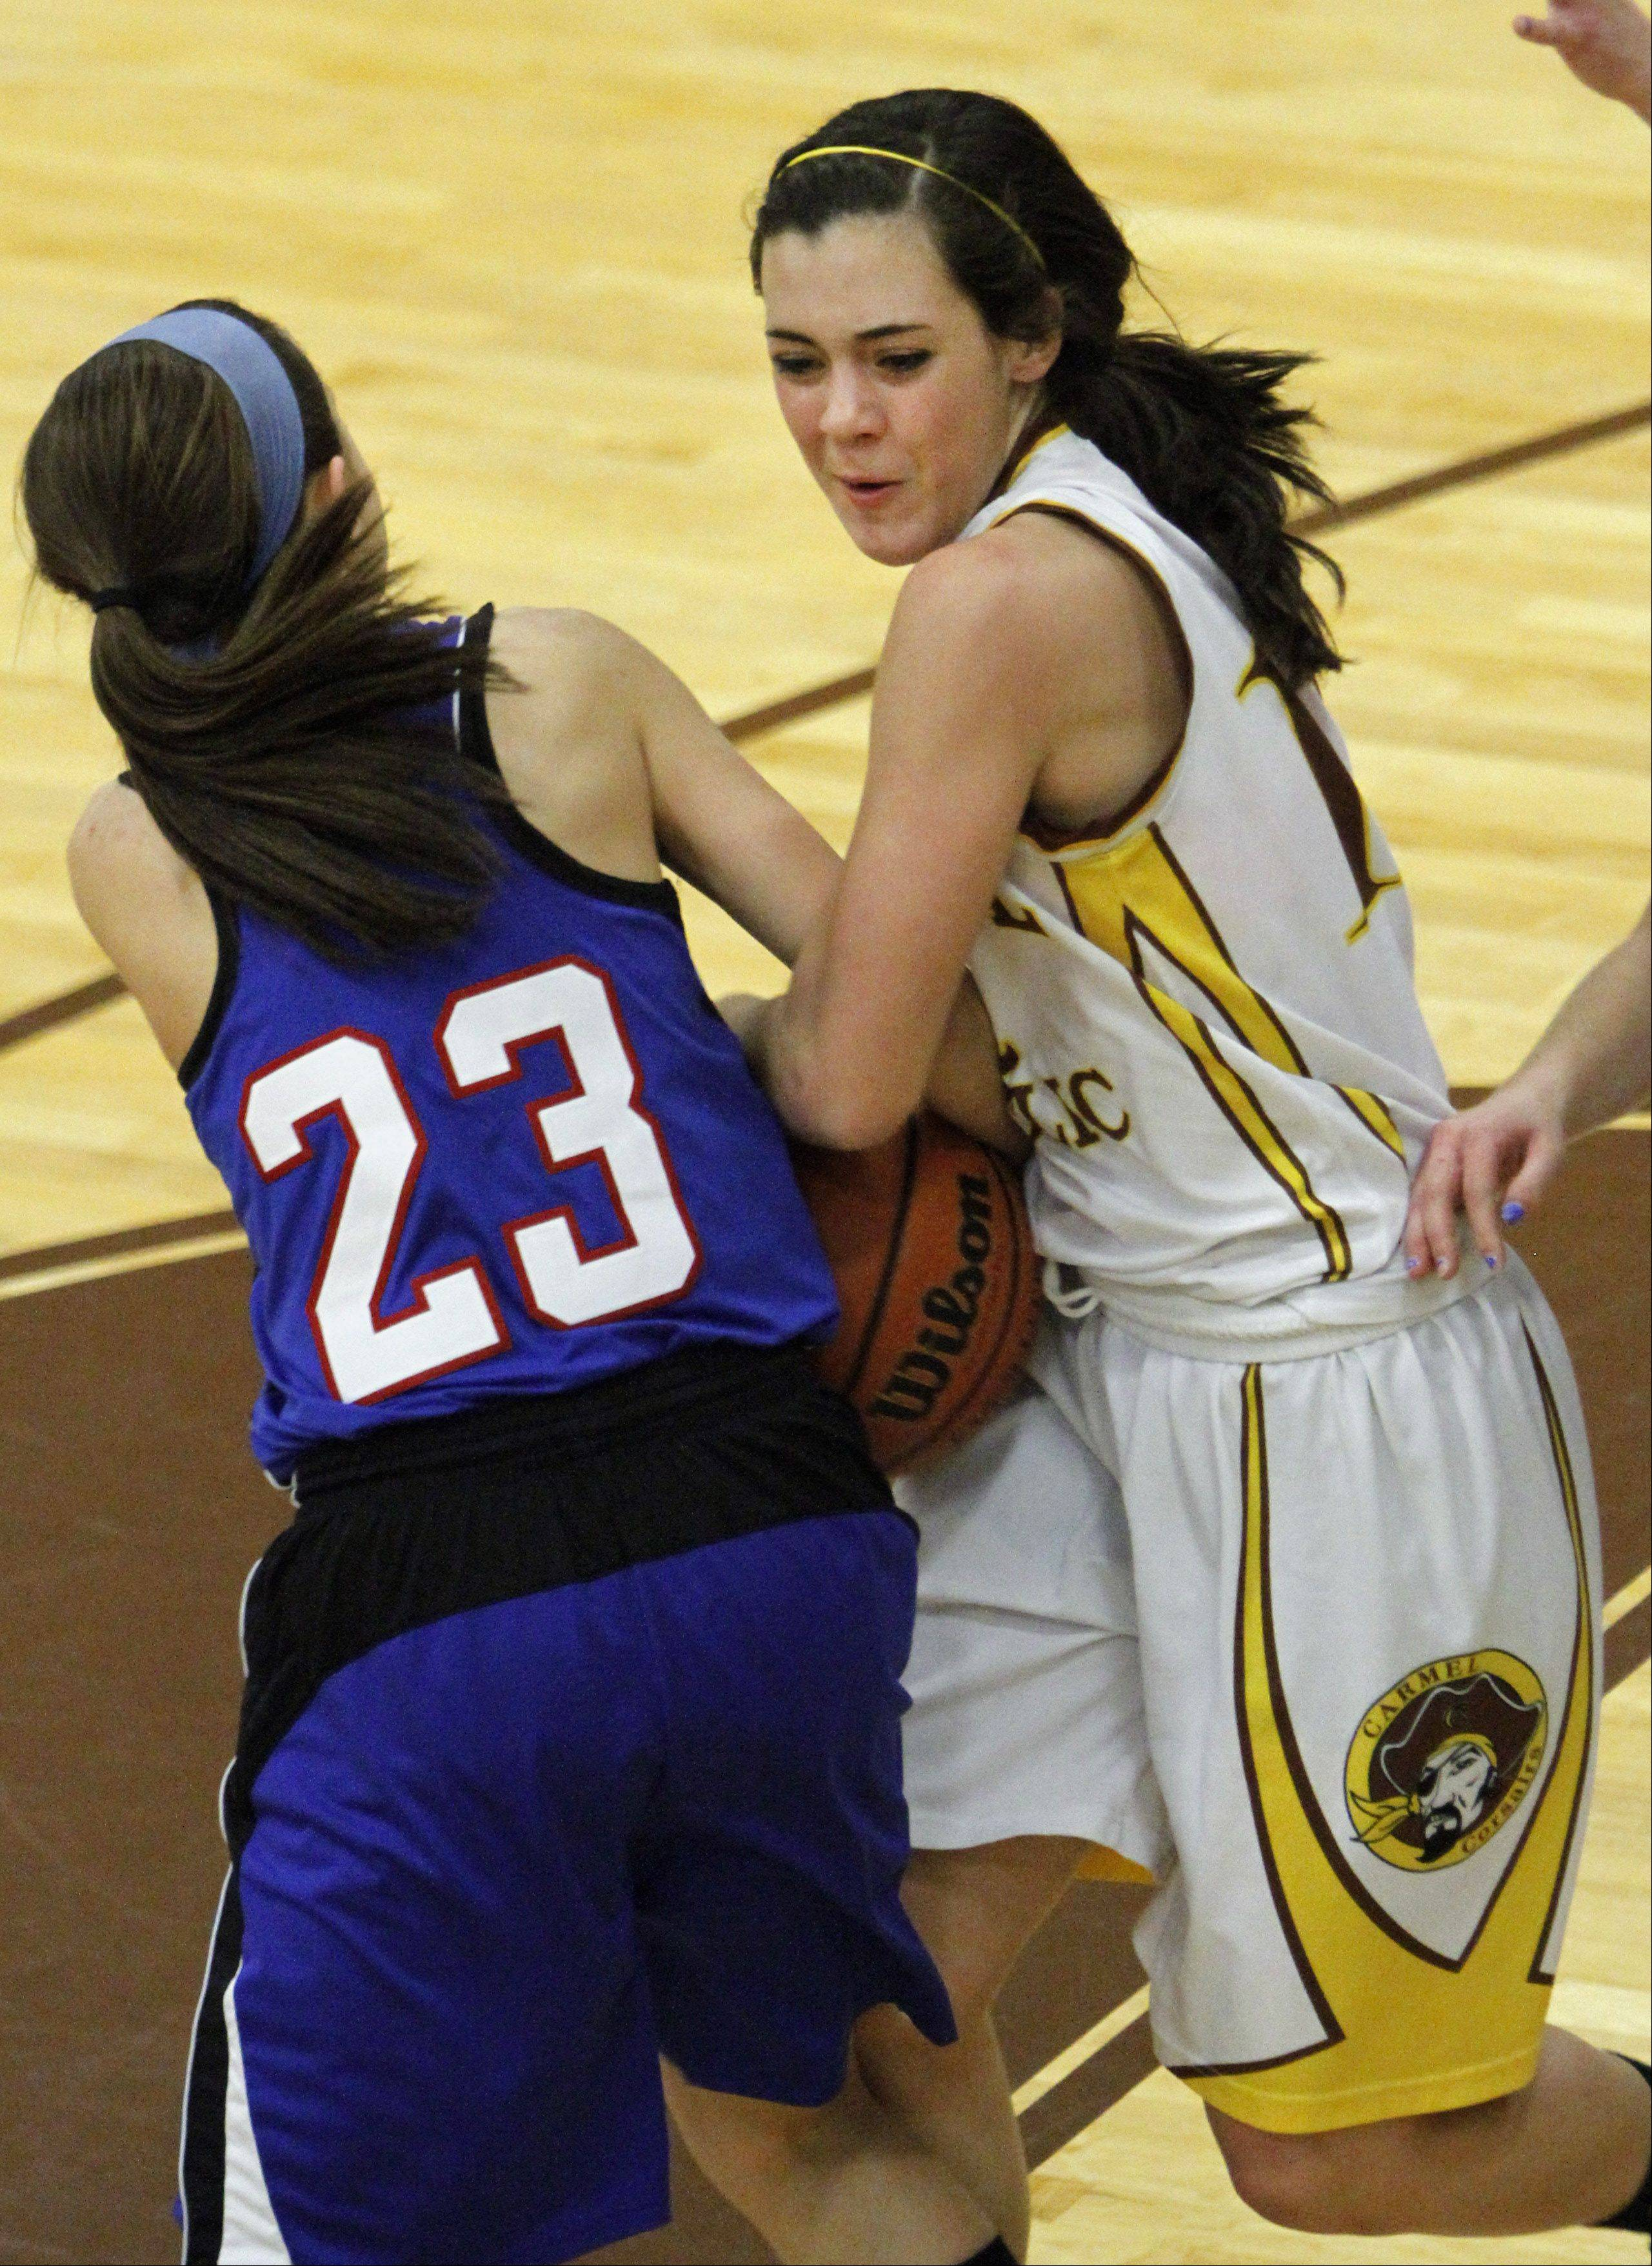 Carmel's Kathleen Felicelli, right, battles against Lakes for a rebound during the 2011-12 season.